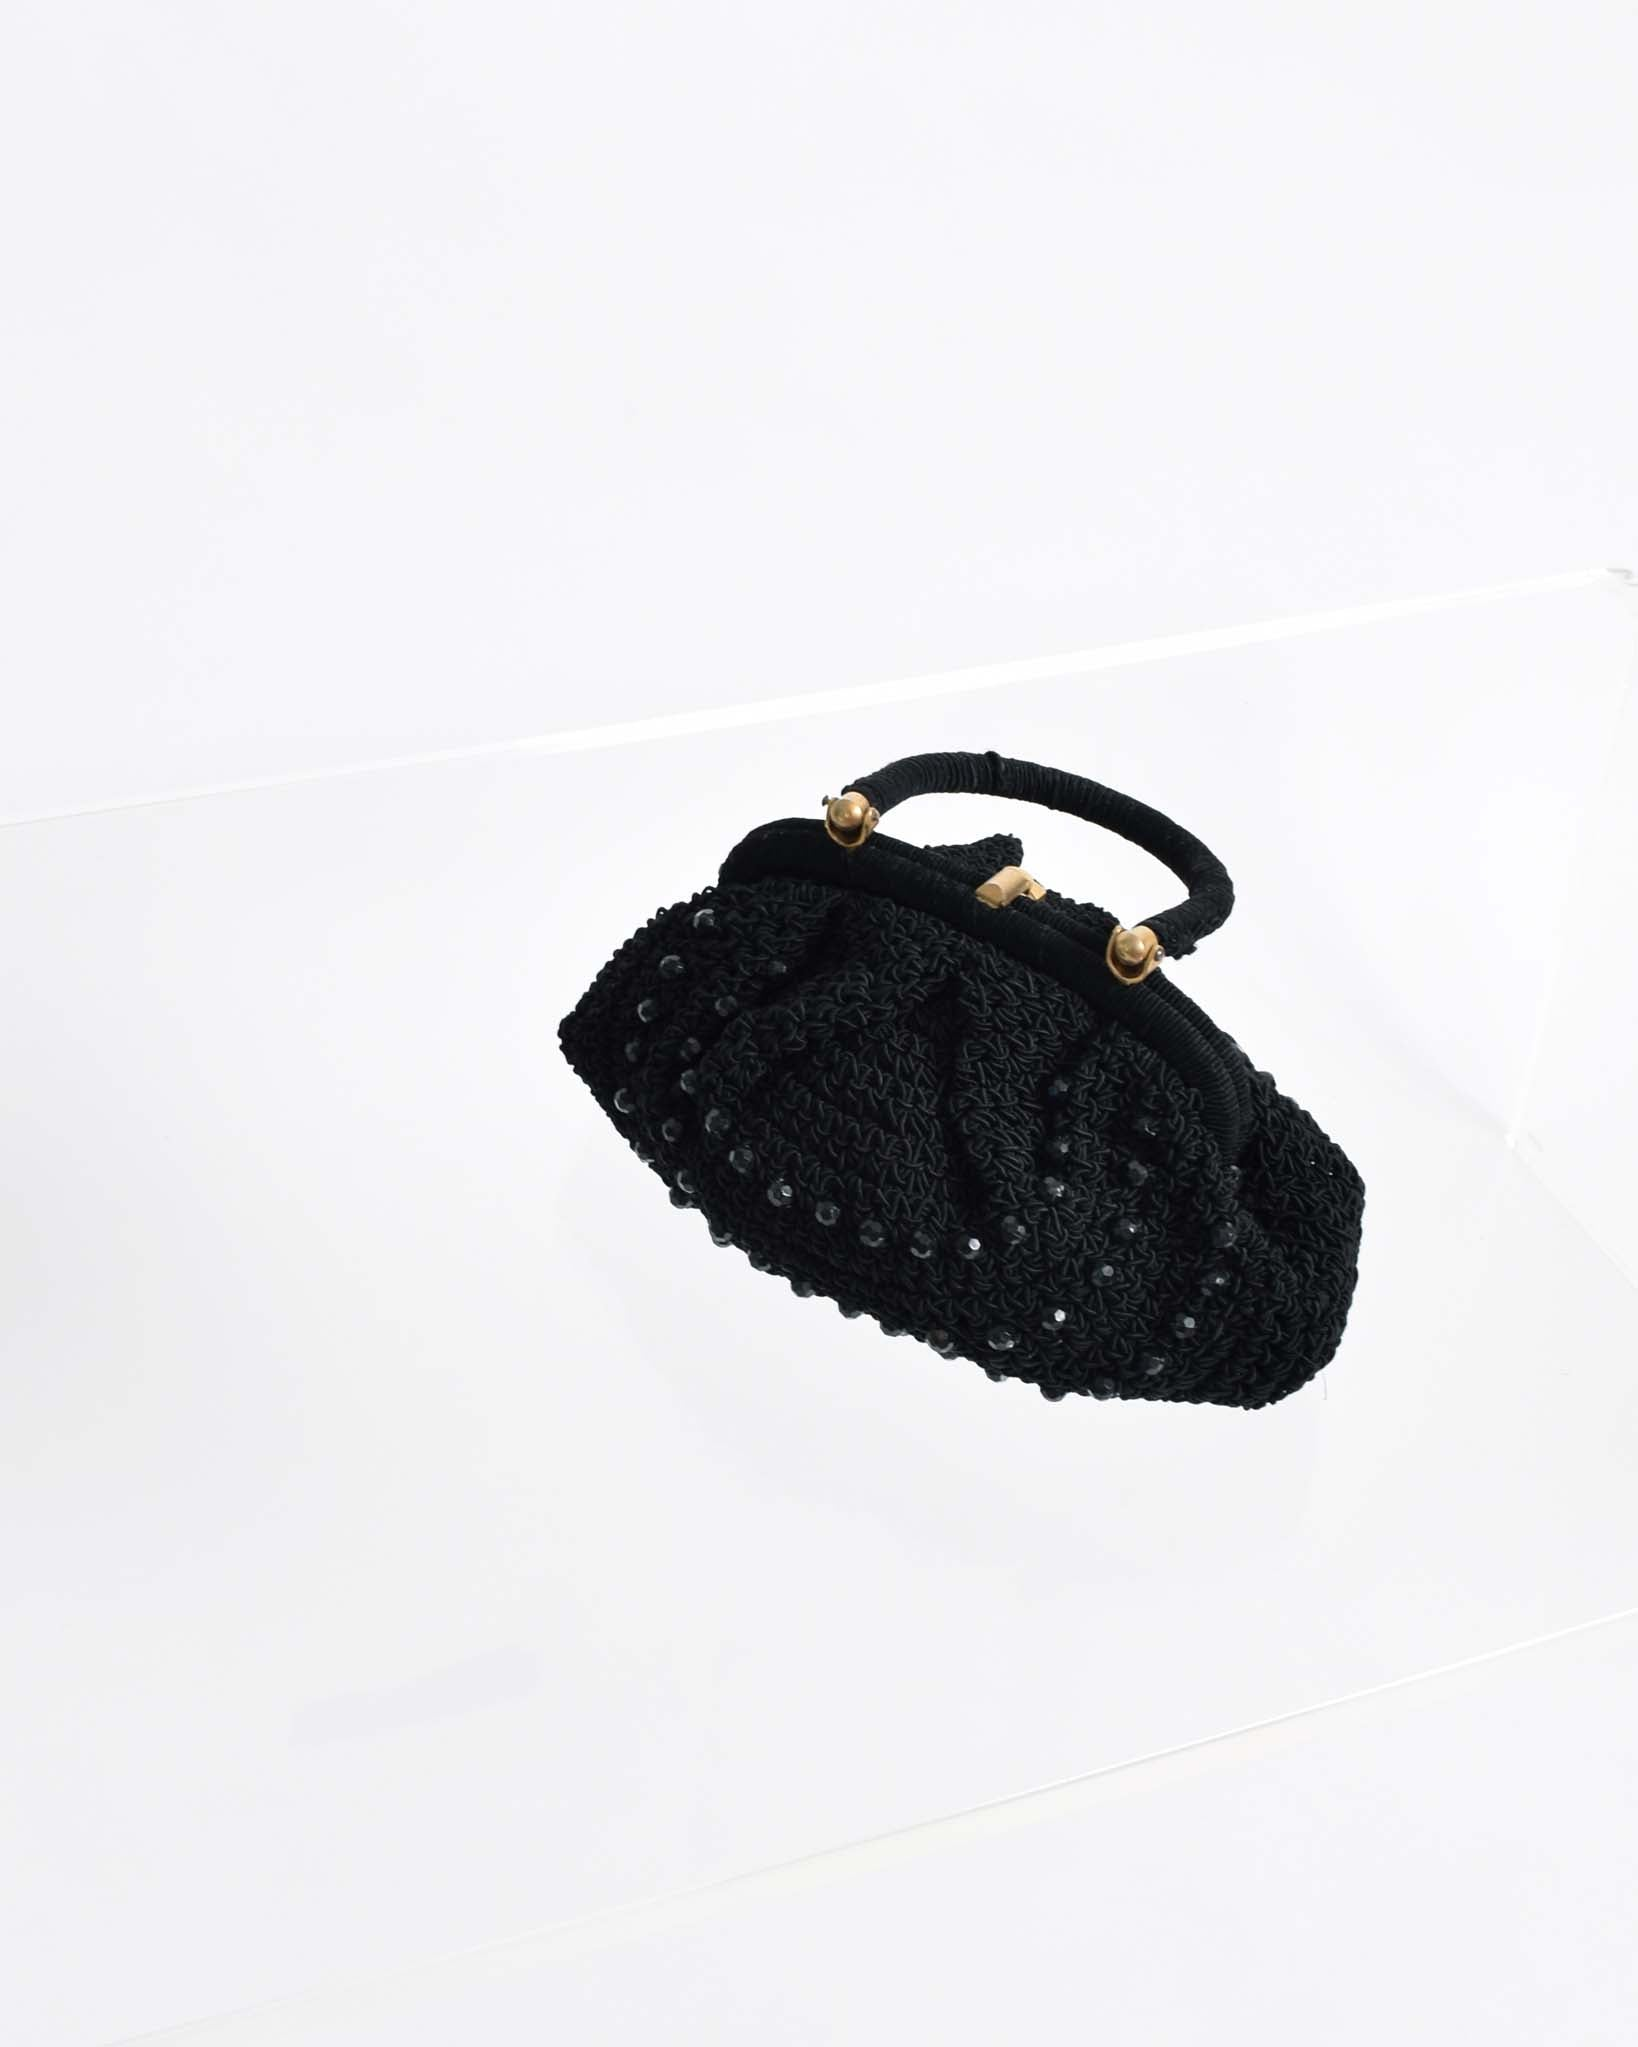 Vintage 1950s Beaded Crochet Handbag